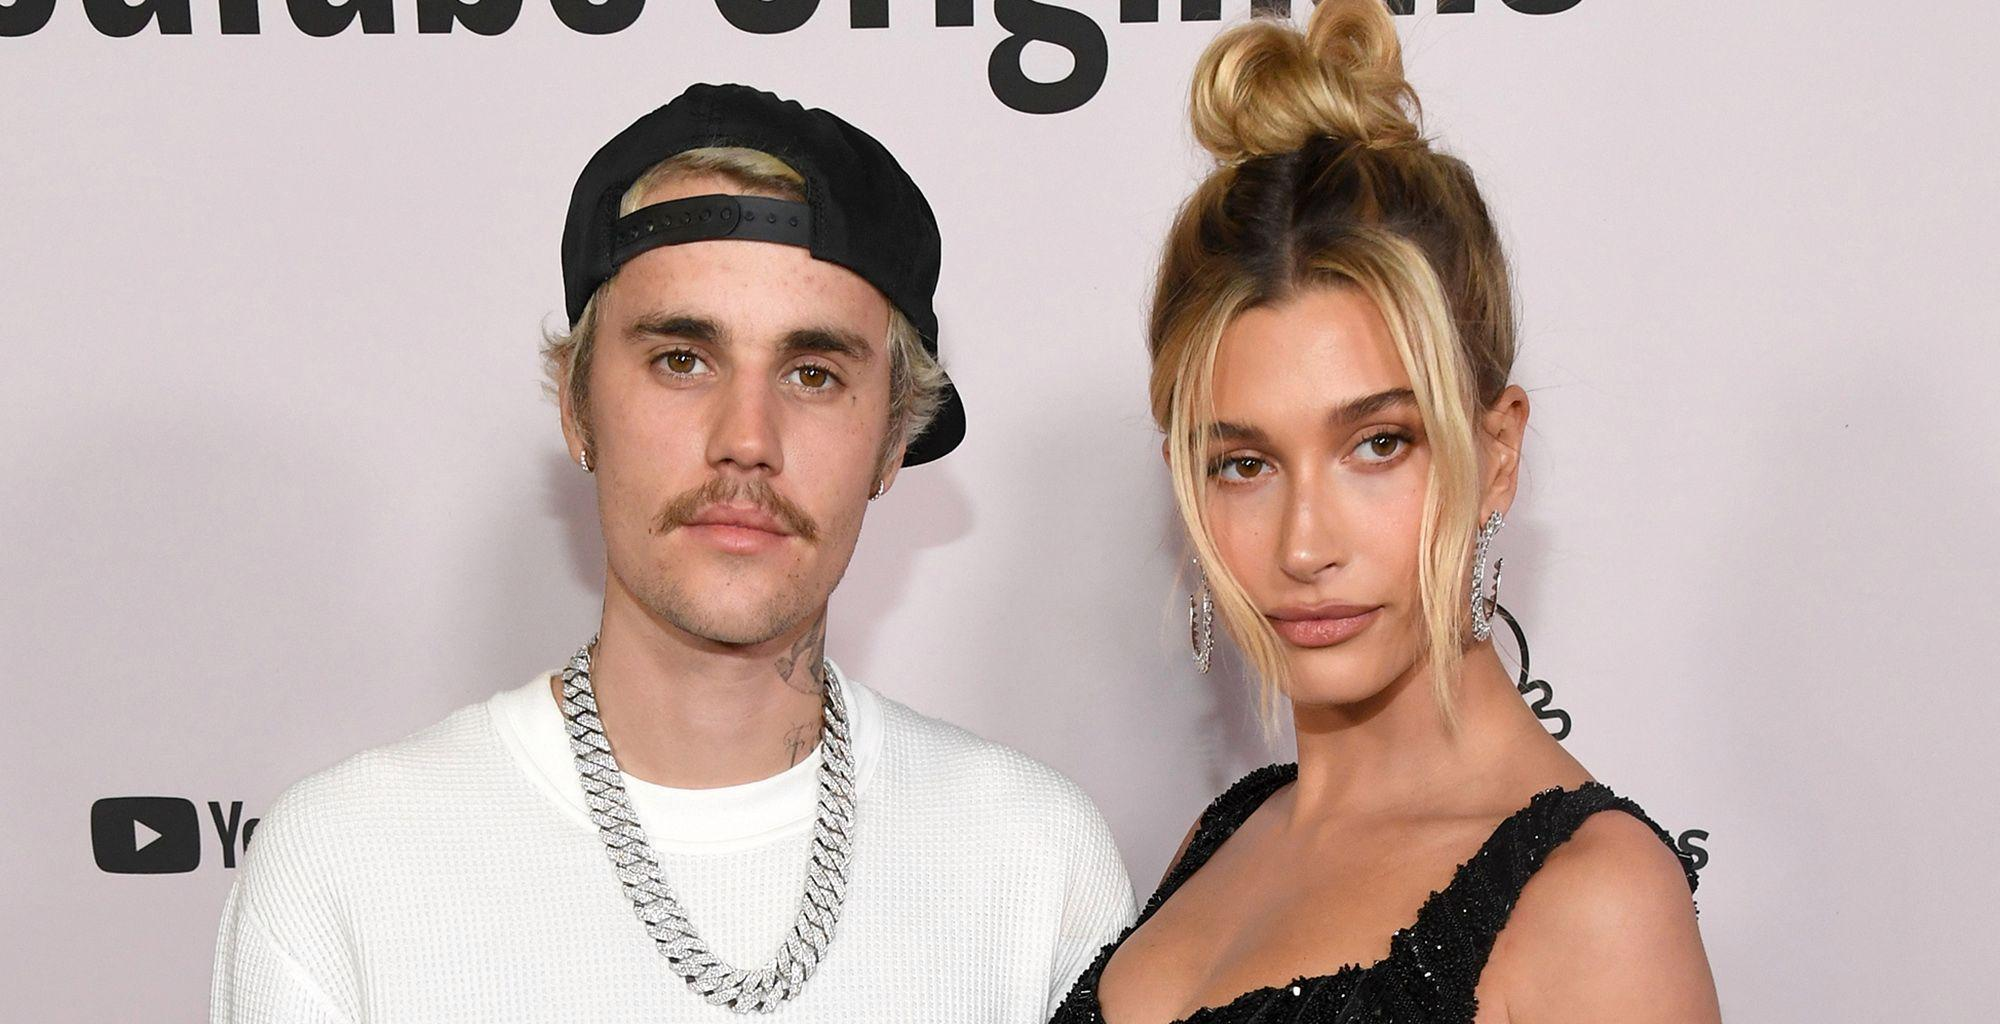 Hailey Baldwin Reportedly 'Very Hurt' Over The Sexual Assault Accusations Made Against Justin Bieber!